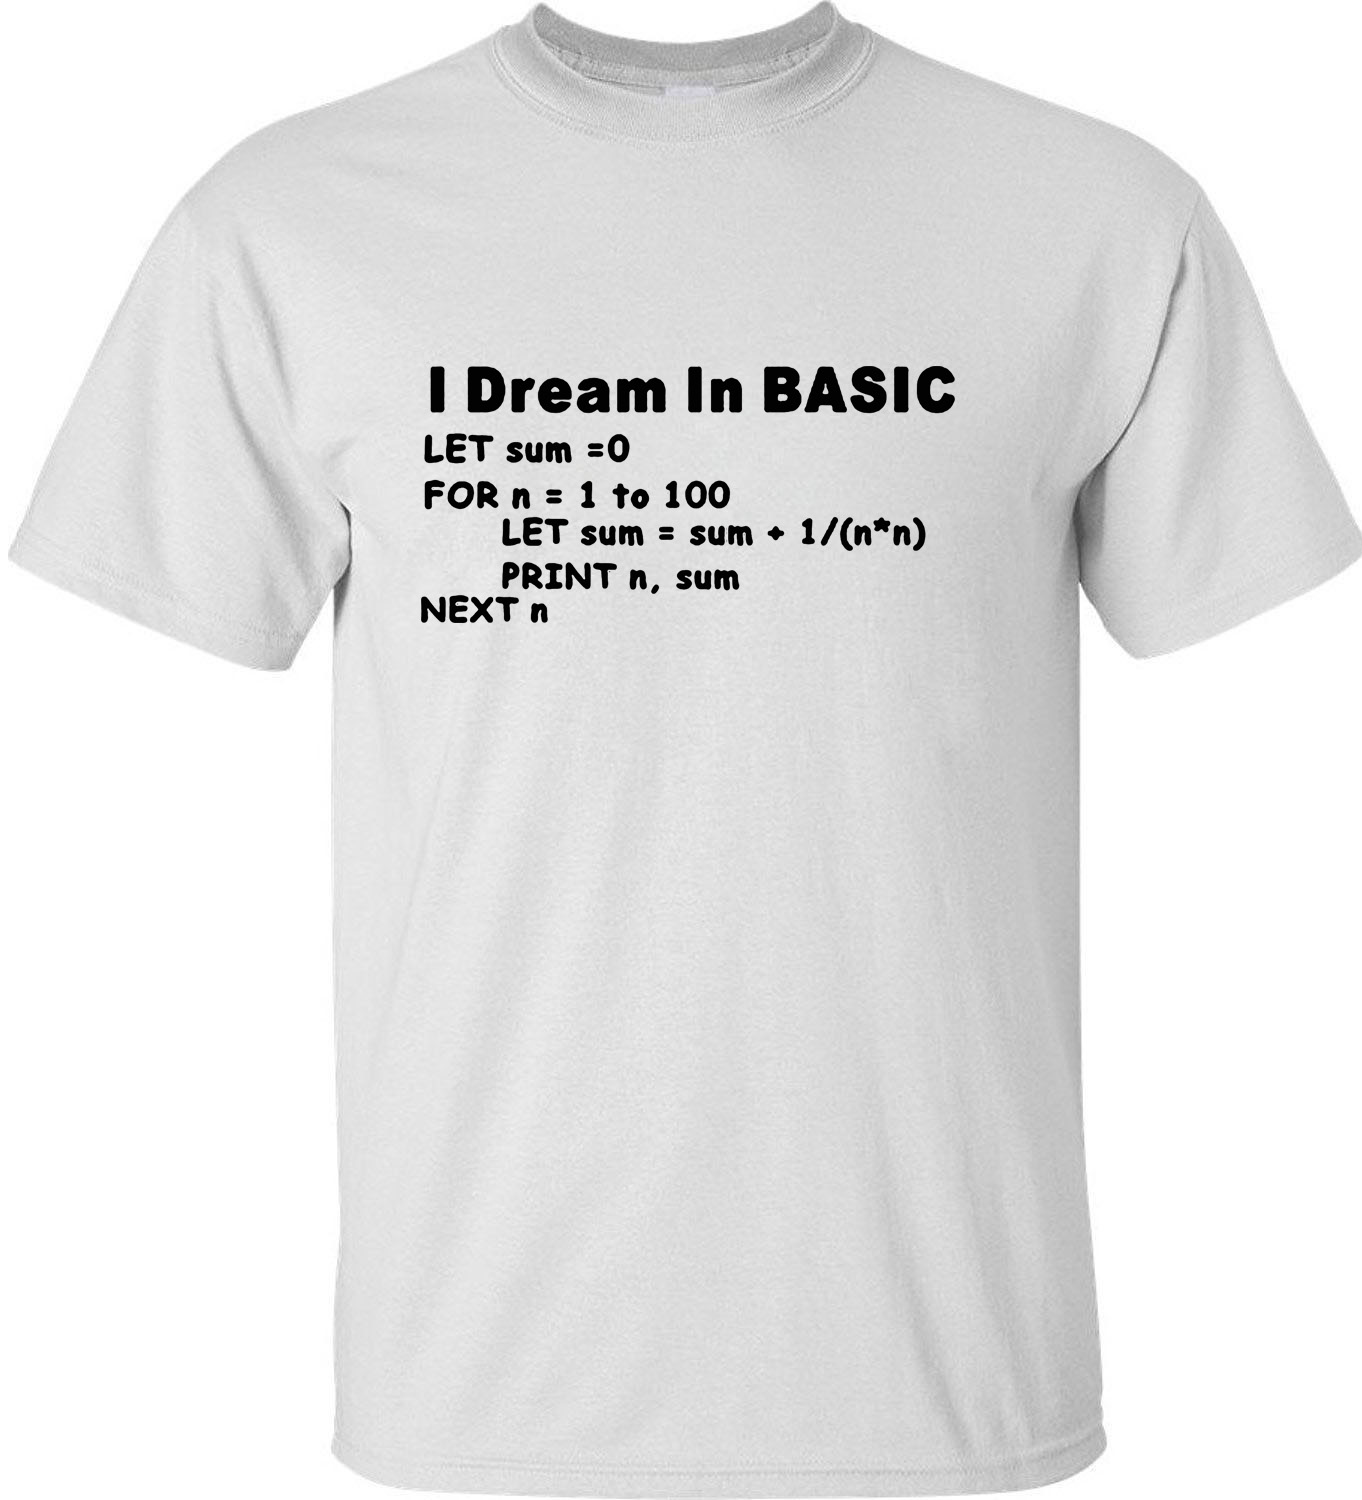 New Style Basic Programming Language Computer T-shirt Retro Video Game Funny Short Sleeve Men Casual Top Tees